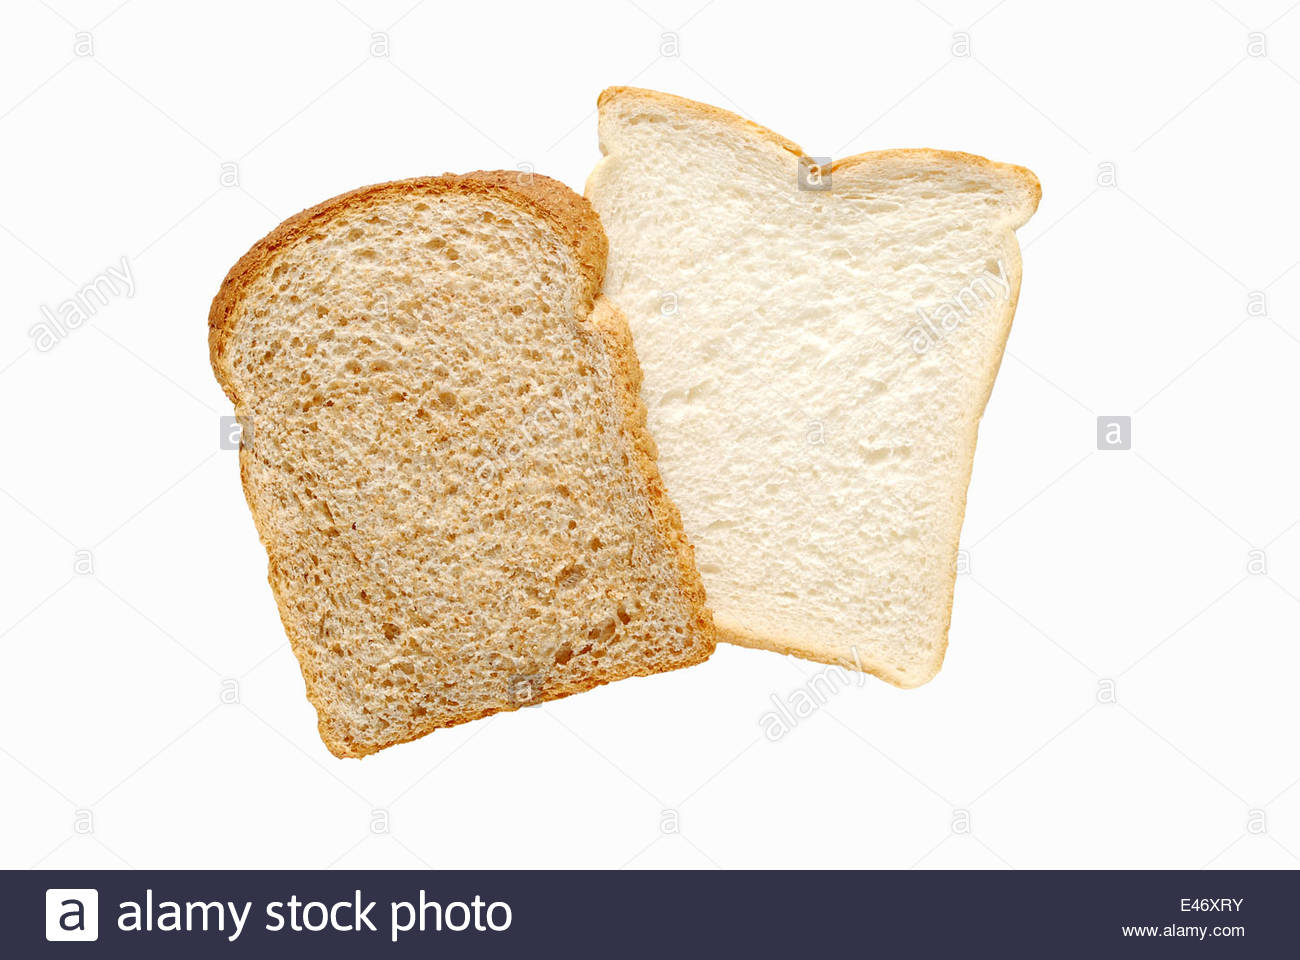 Wholemeal Bread Two Slices Cut Stock Photos Wholemeal